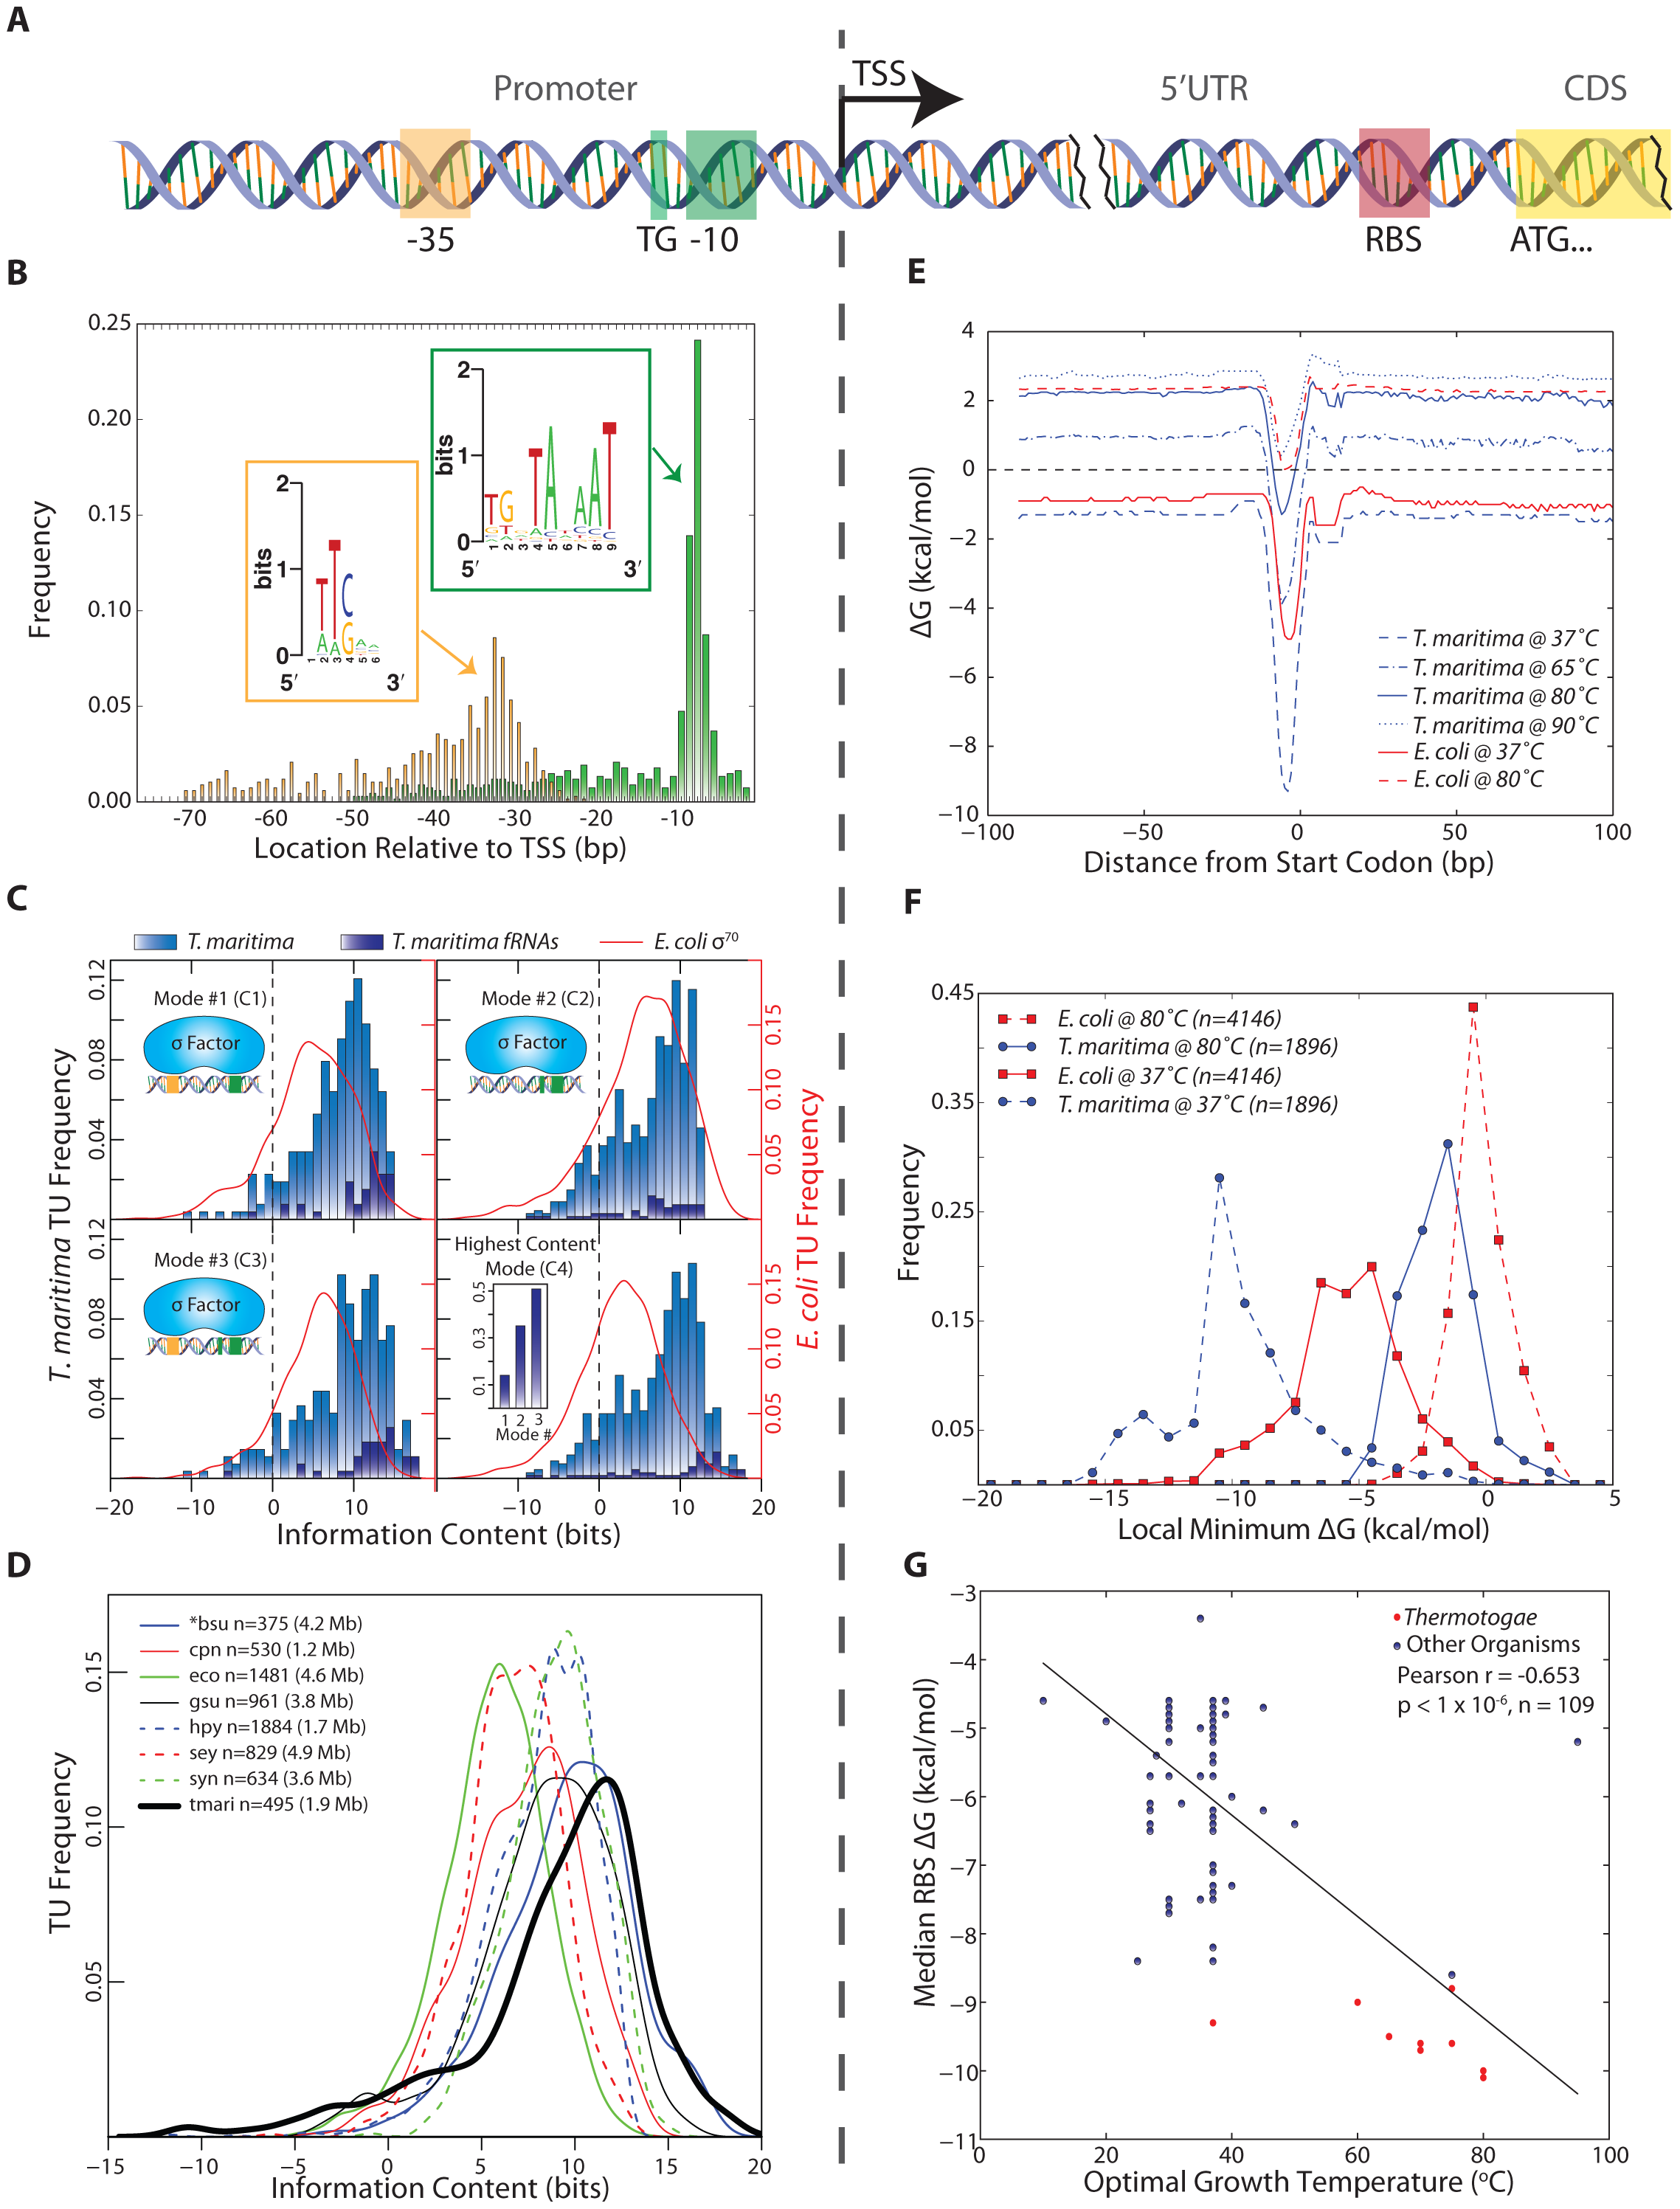 Identification and quantitative comparison of genetic elements for transcription and translation initiation.